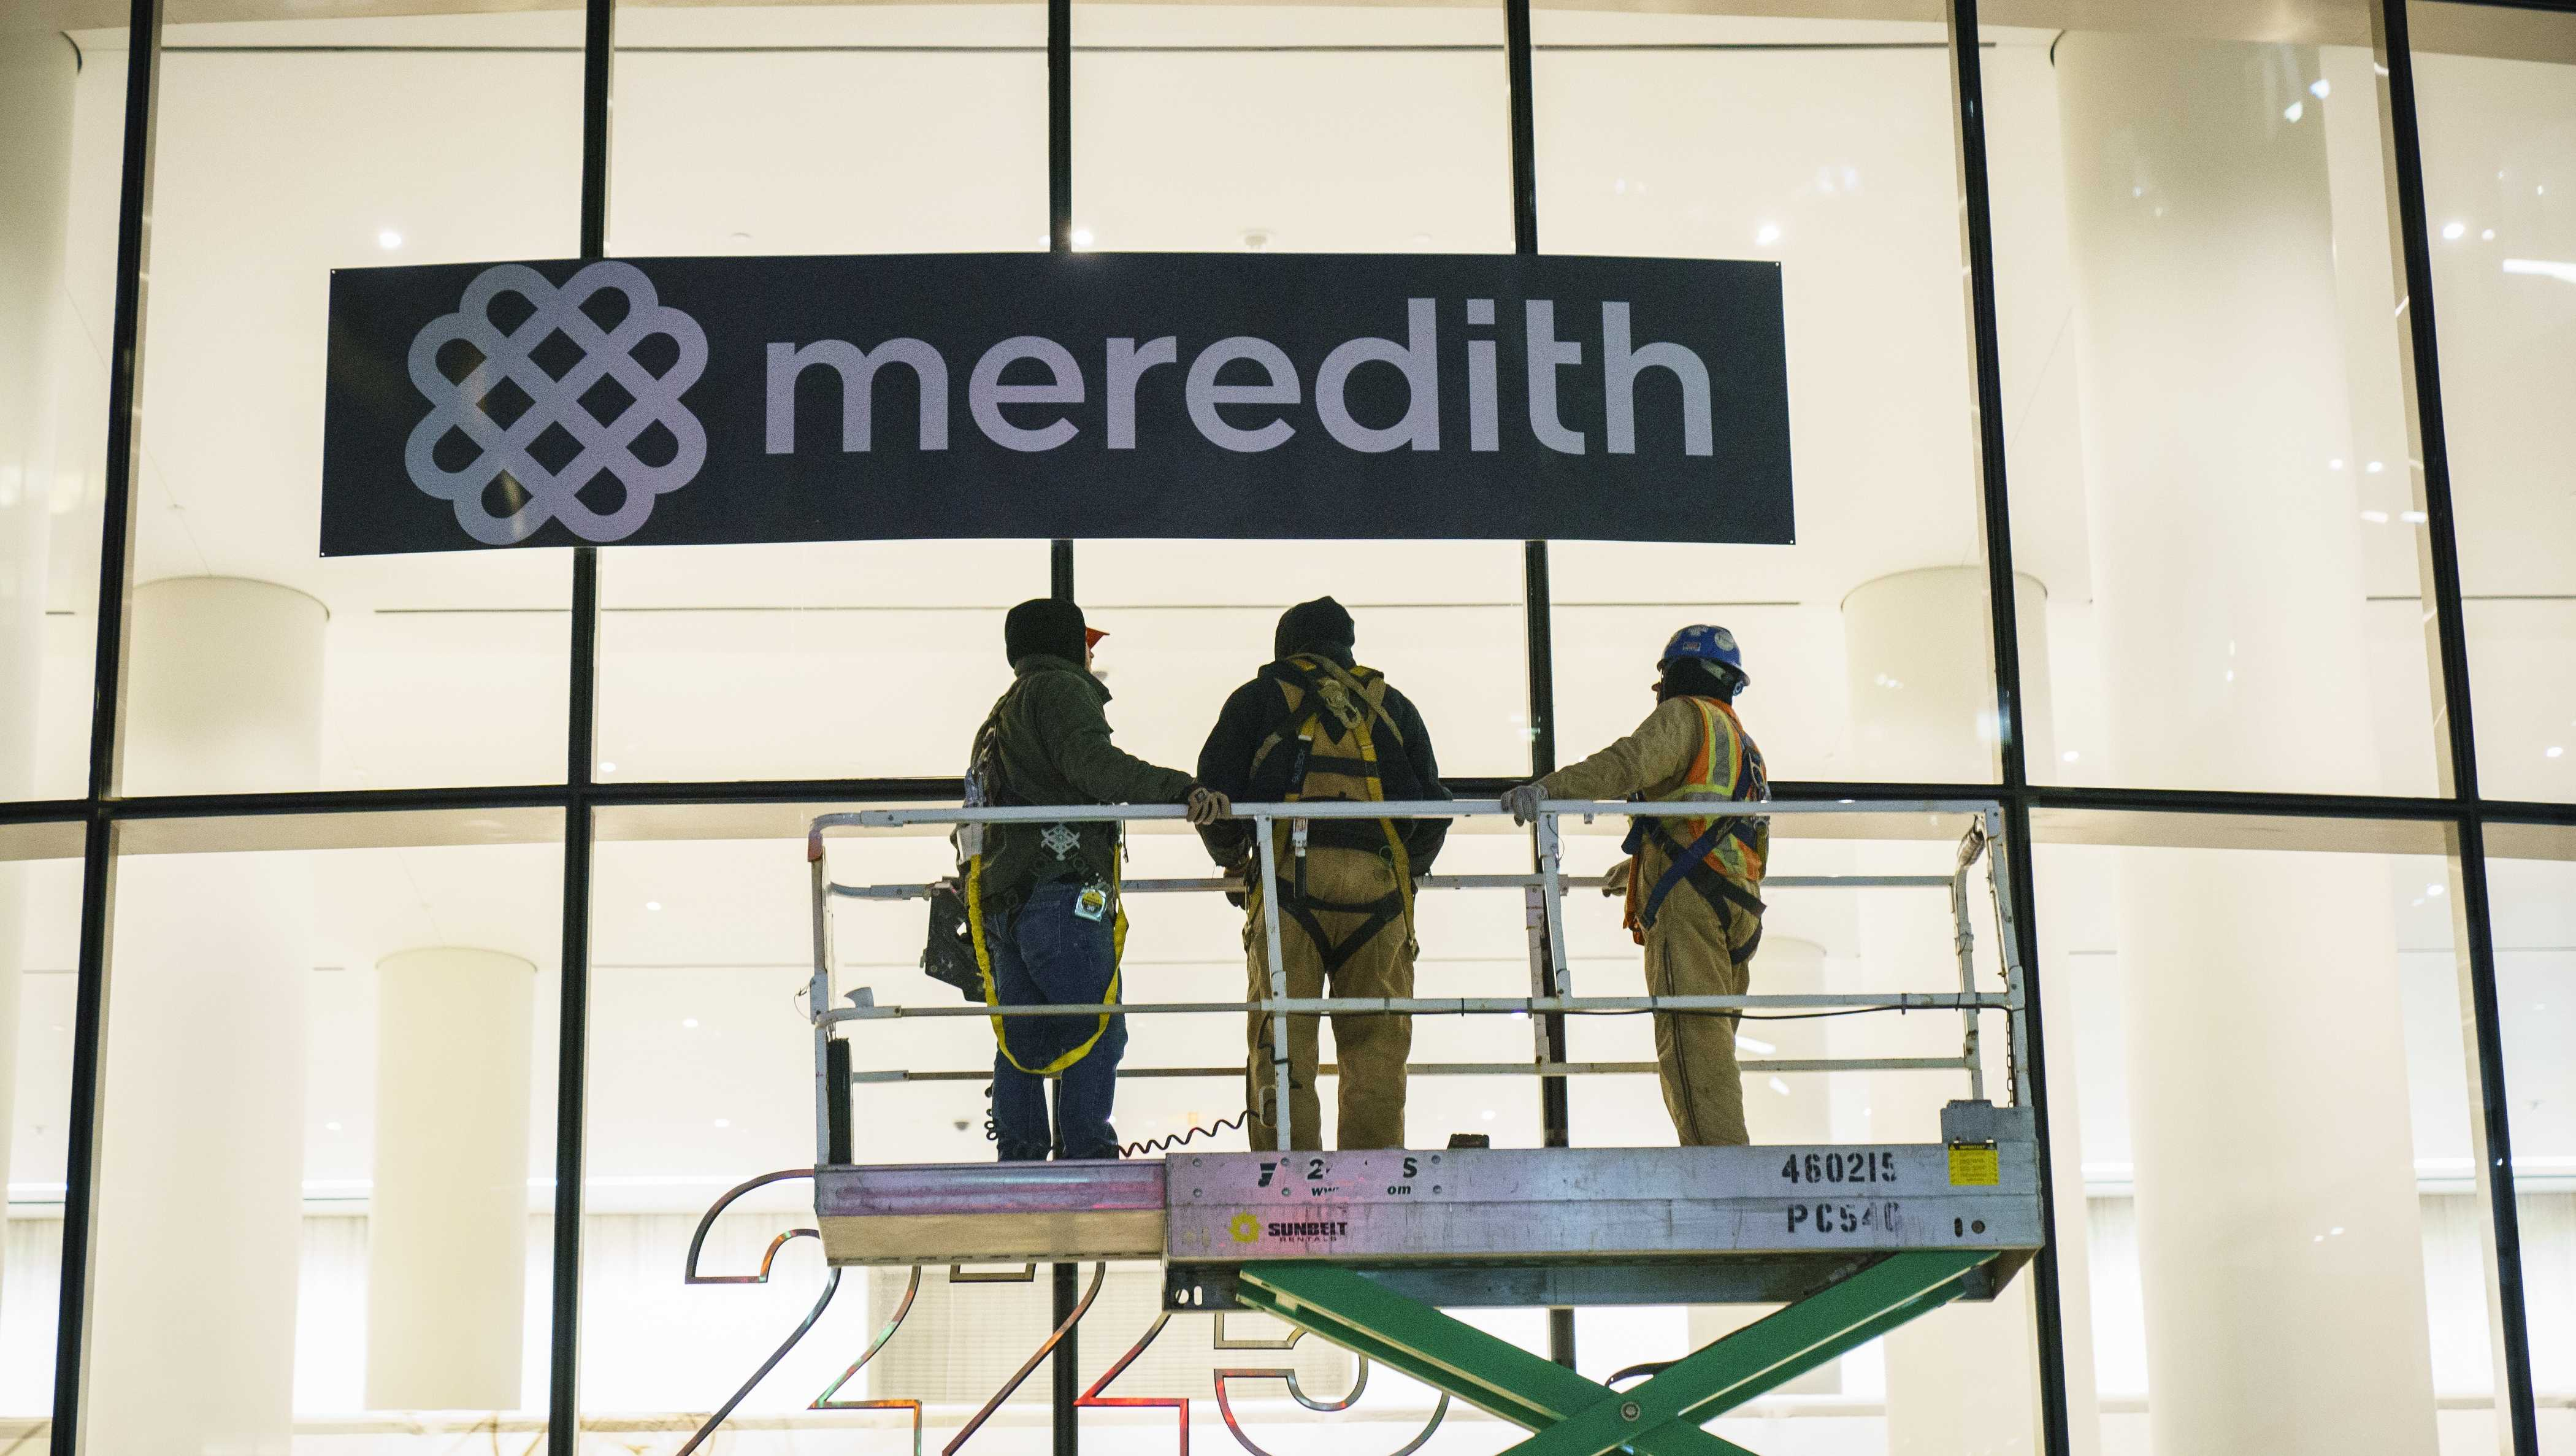 Workers cover up Time Inc. signage with Meredith Corporation signage at the Time Inc. office building in Lower Manhattan, January 31, 2018 in New York City.